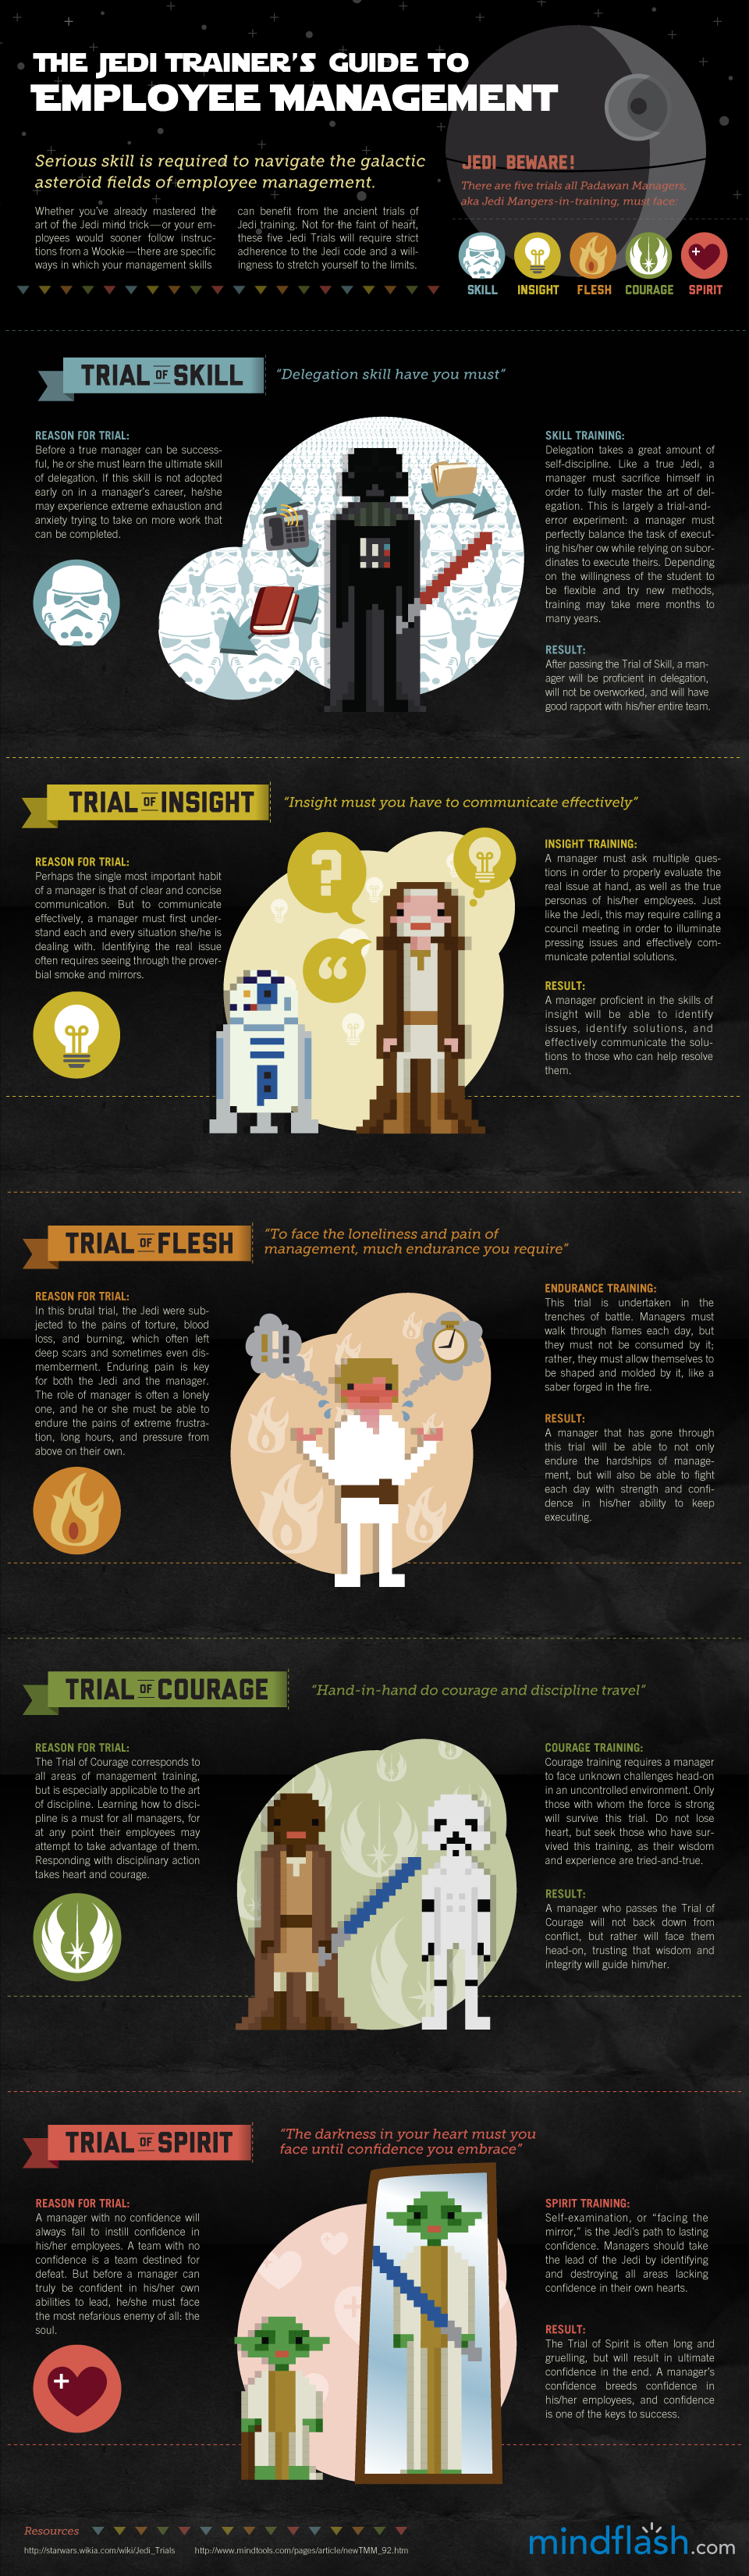 Jedi Guide to Employee Management [Infographic]